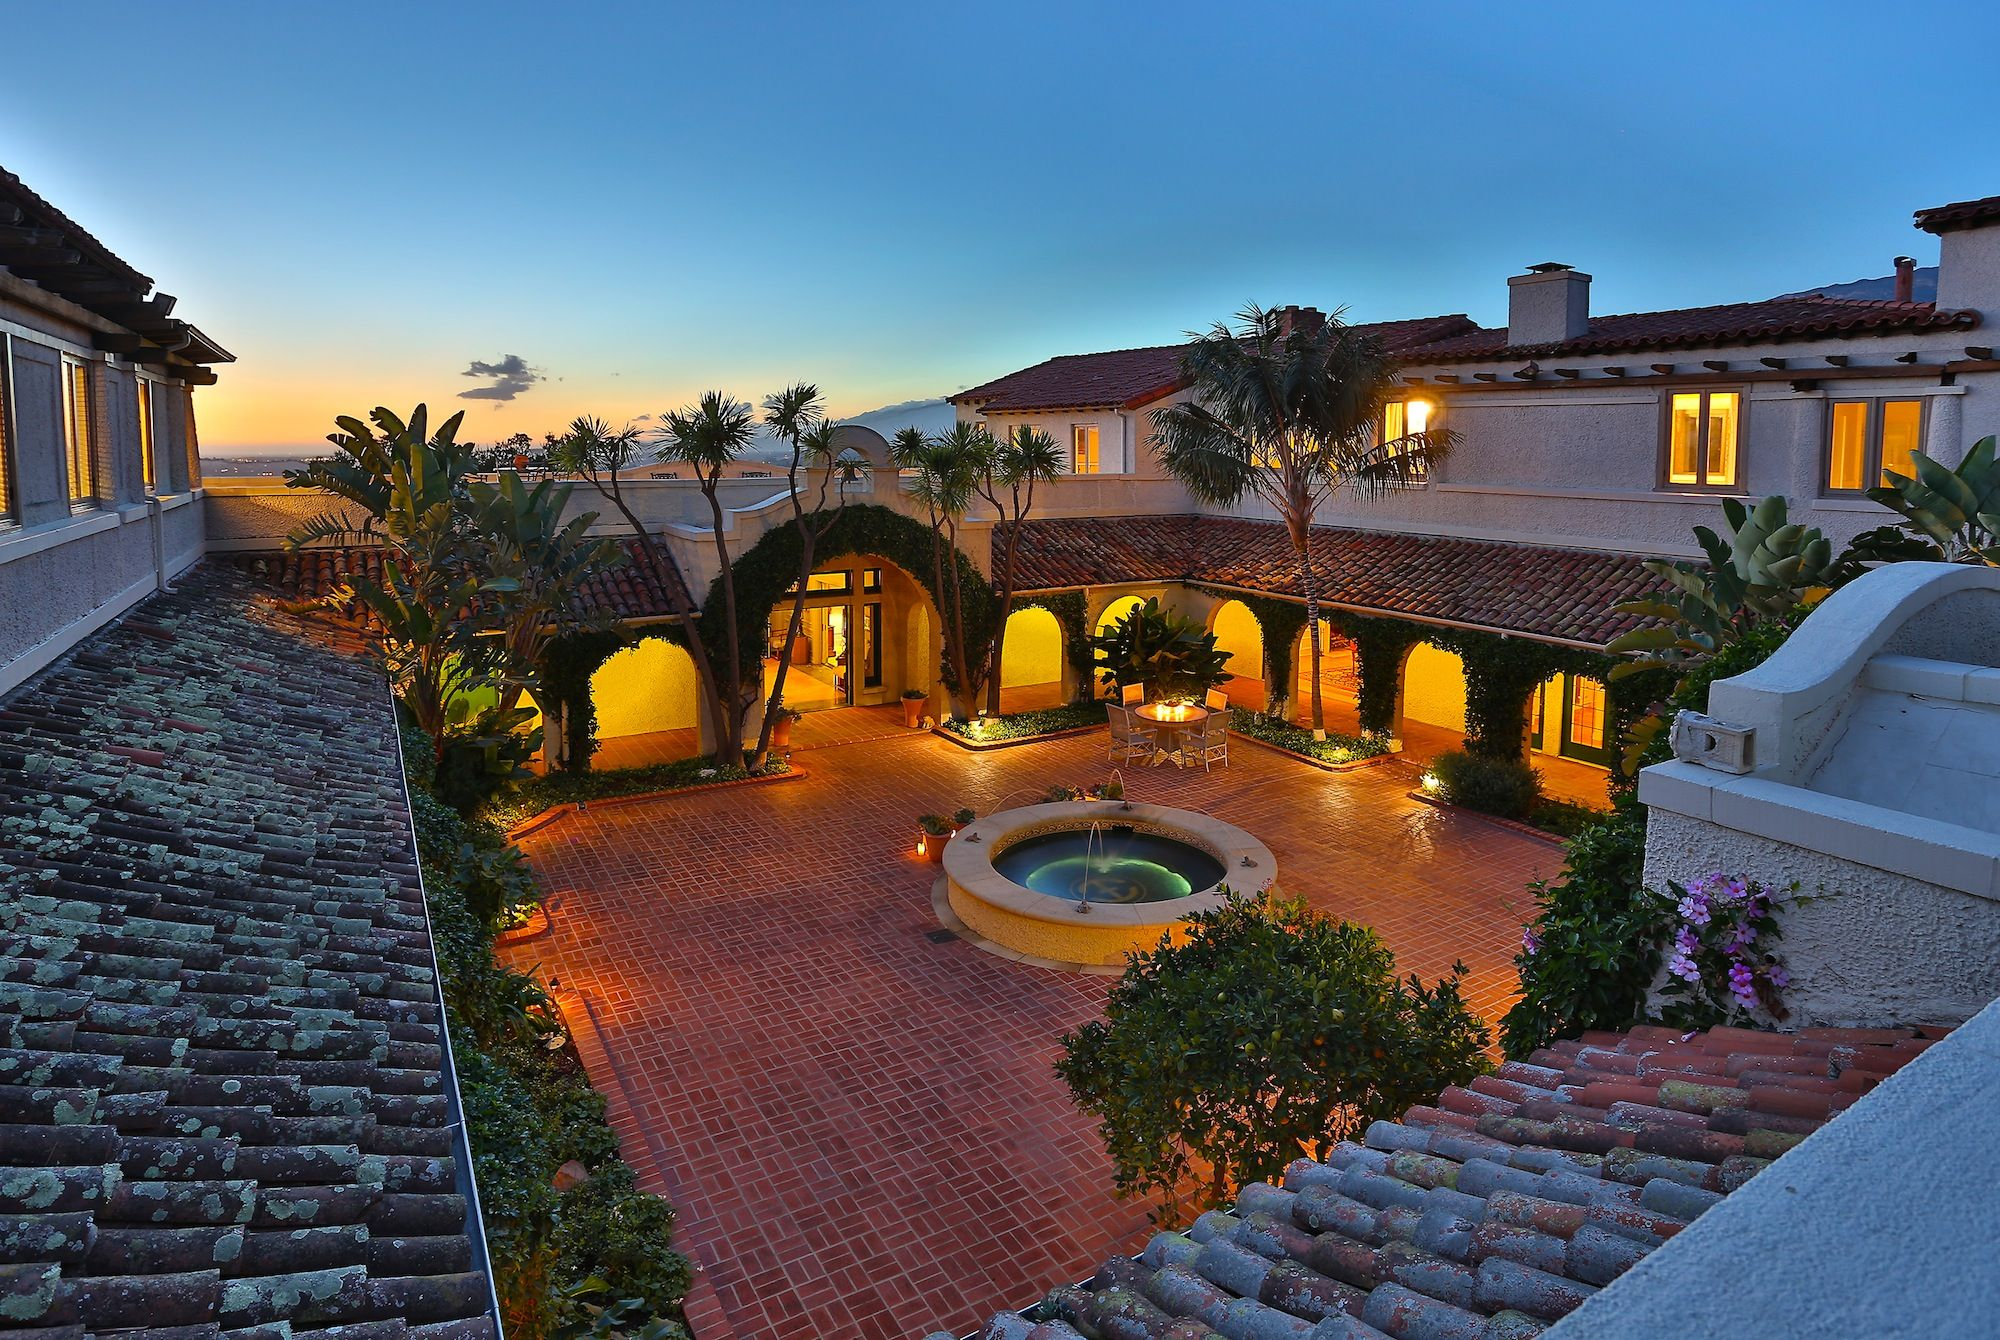 Santa barbara realtor rankings for 2013 haciendas santa for Spanish style homes for sale in dallas tx